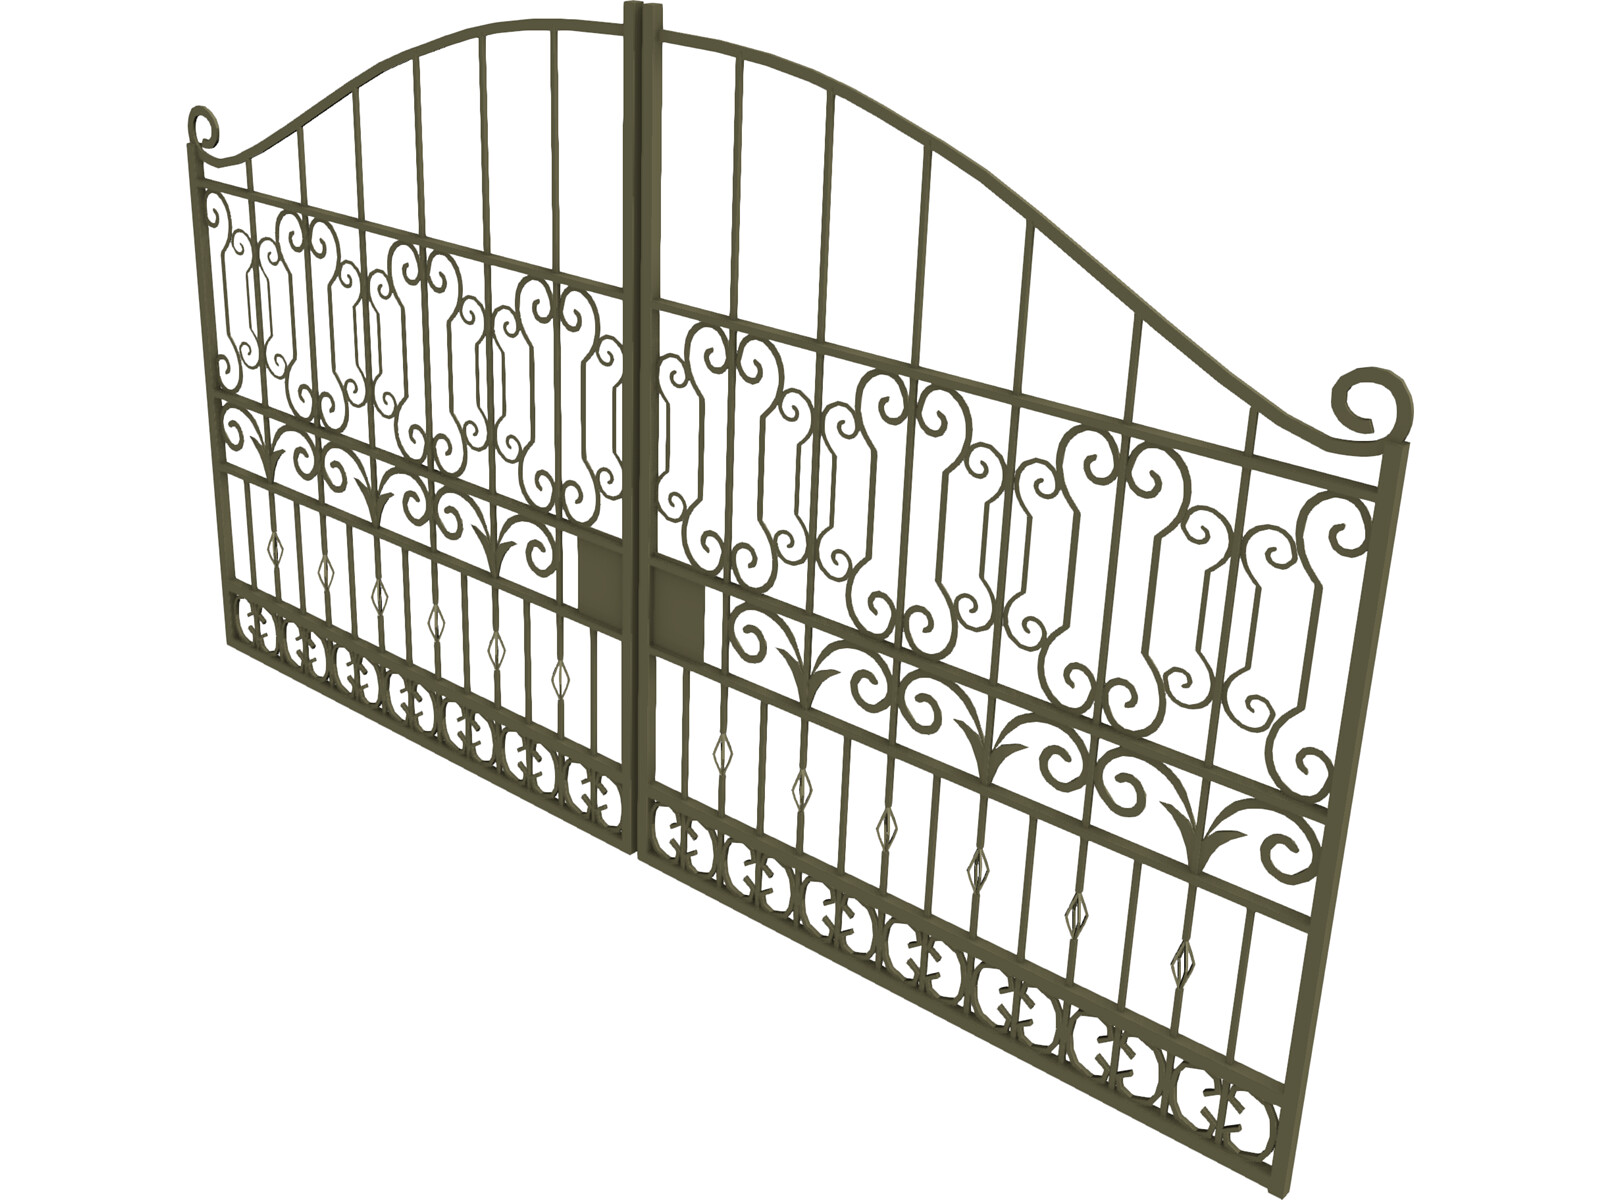 Iron gate d model cad browser